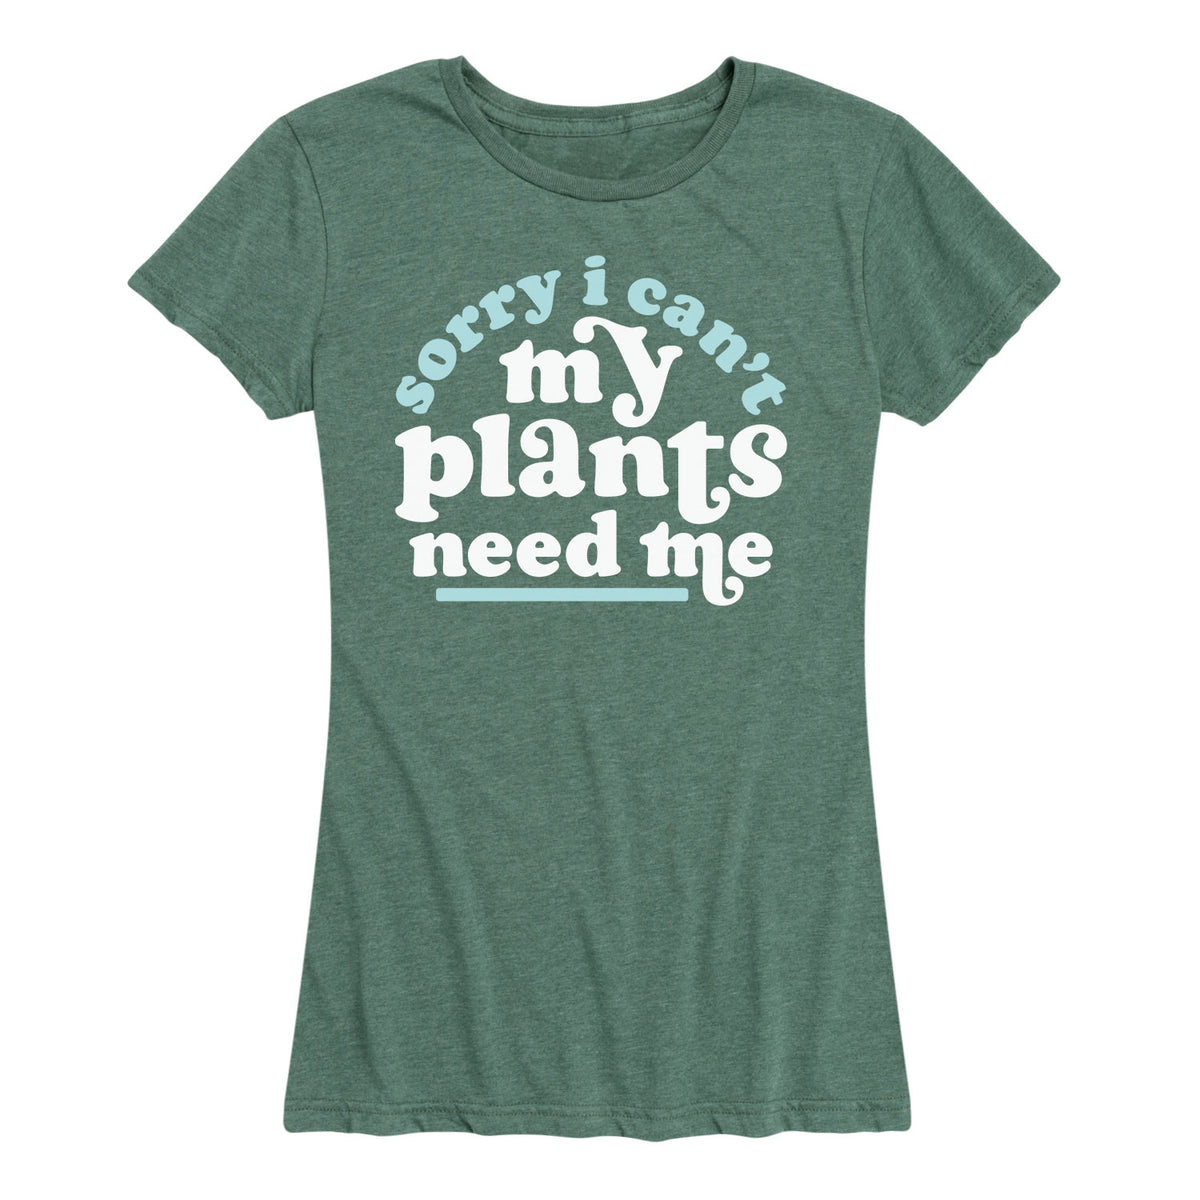 Sorry I Can't My Plants Need Me - Women's Short Sleeve T-Shirt